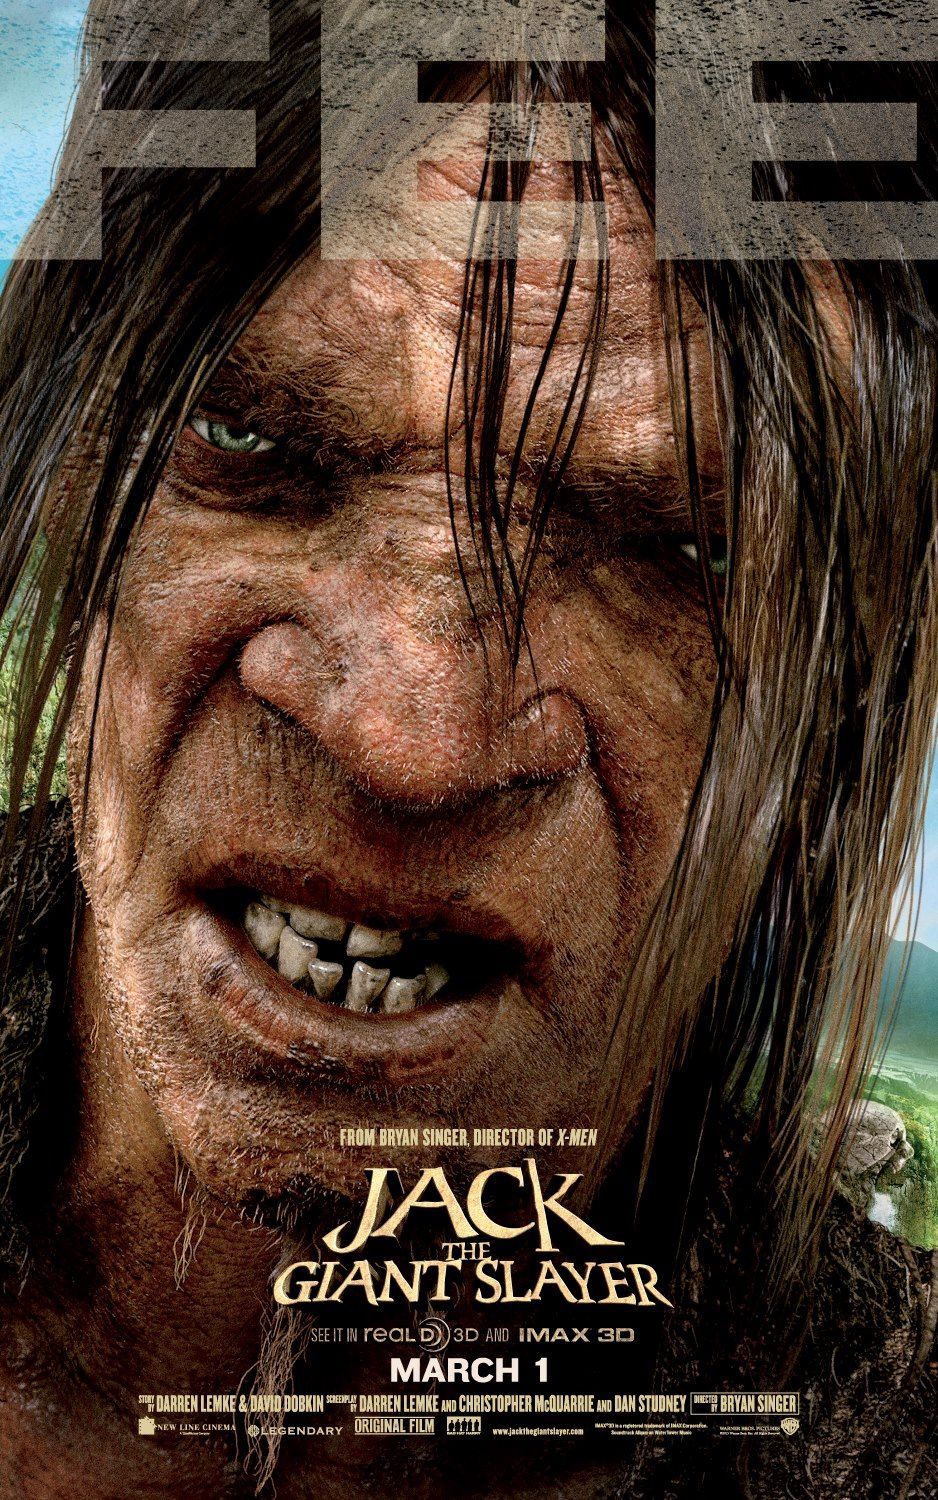 Jack the Giant Slayer - Movie Poster #3 (Original)